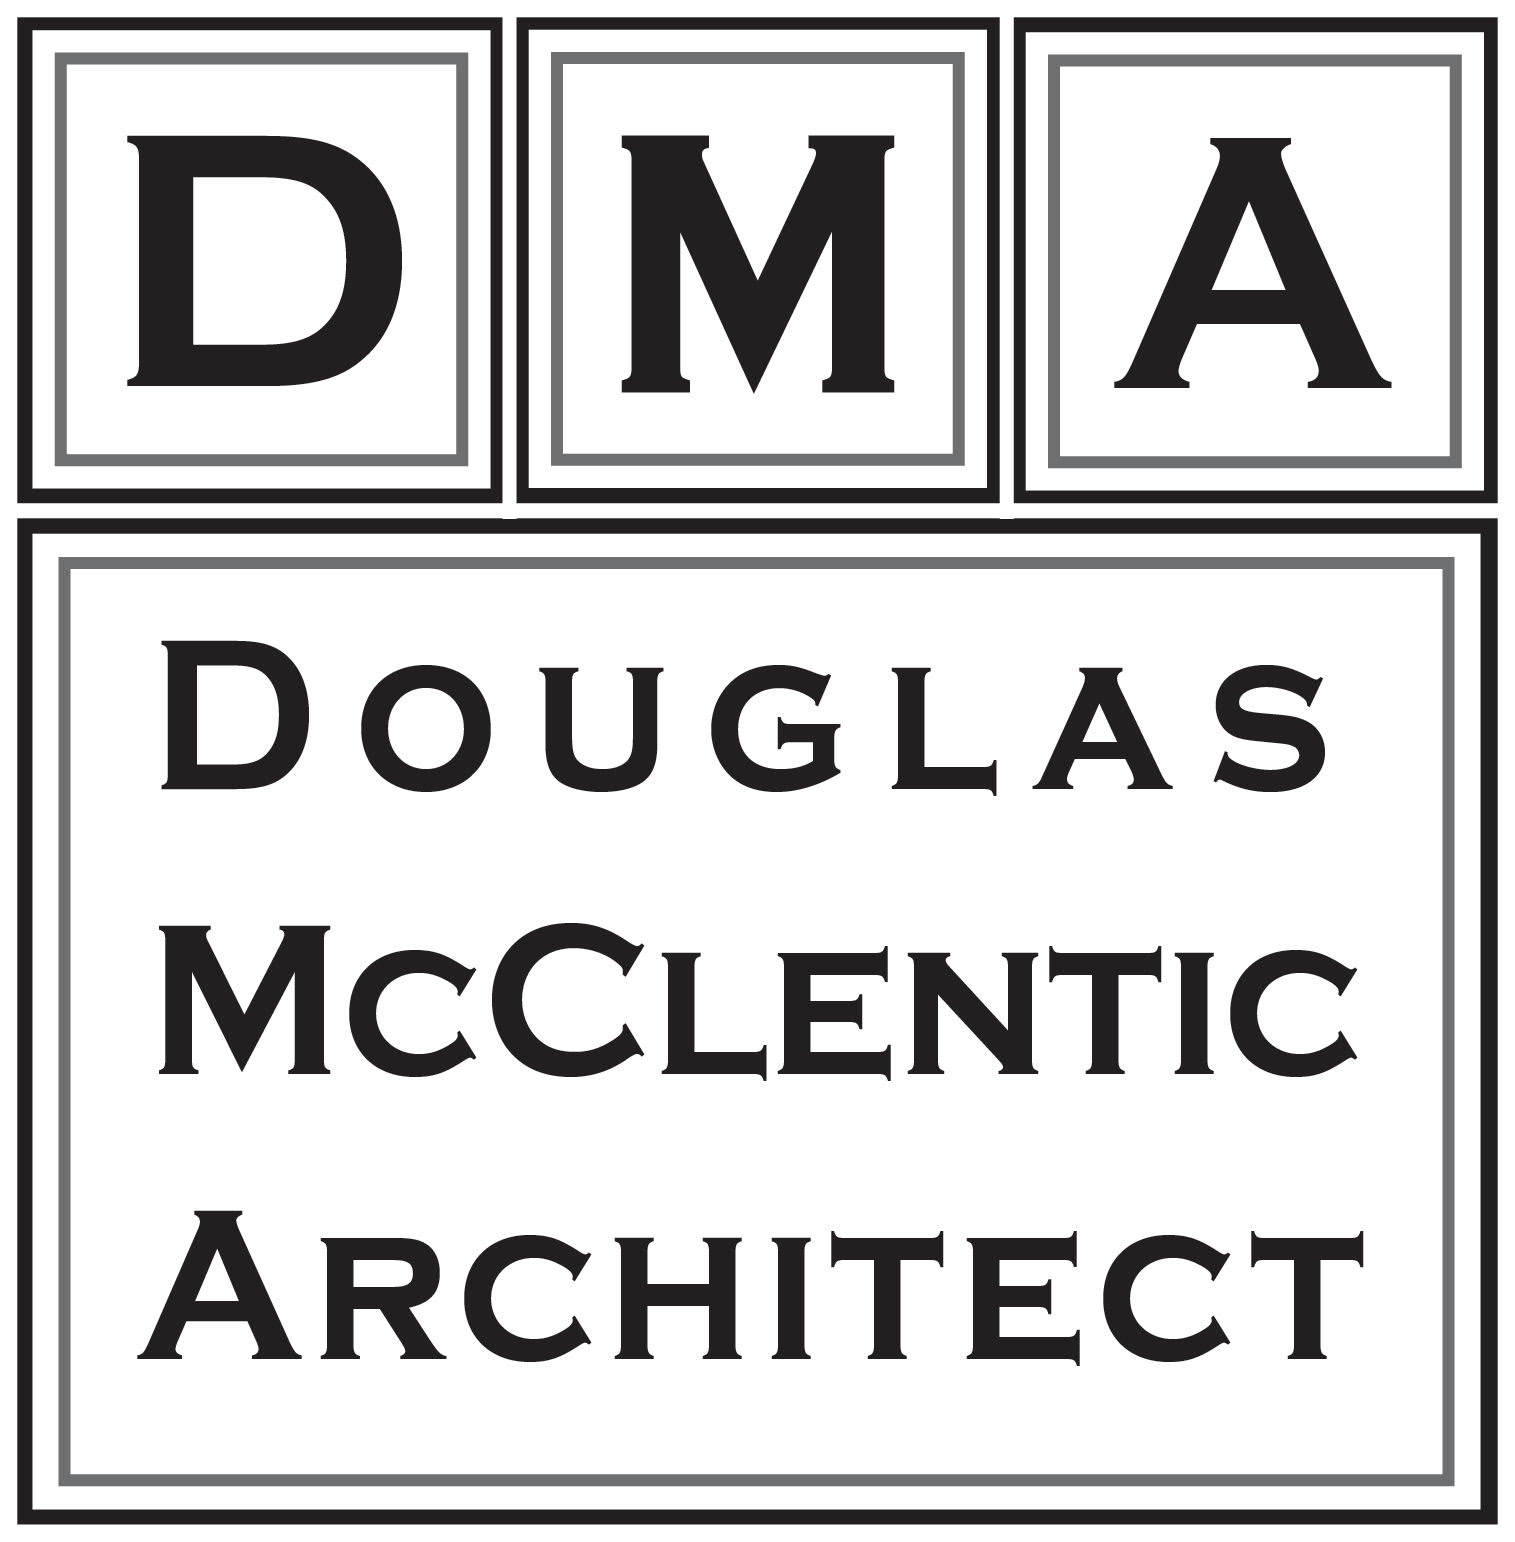 Douglas McClentic Architect